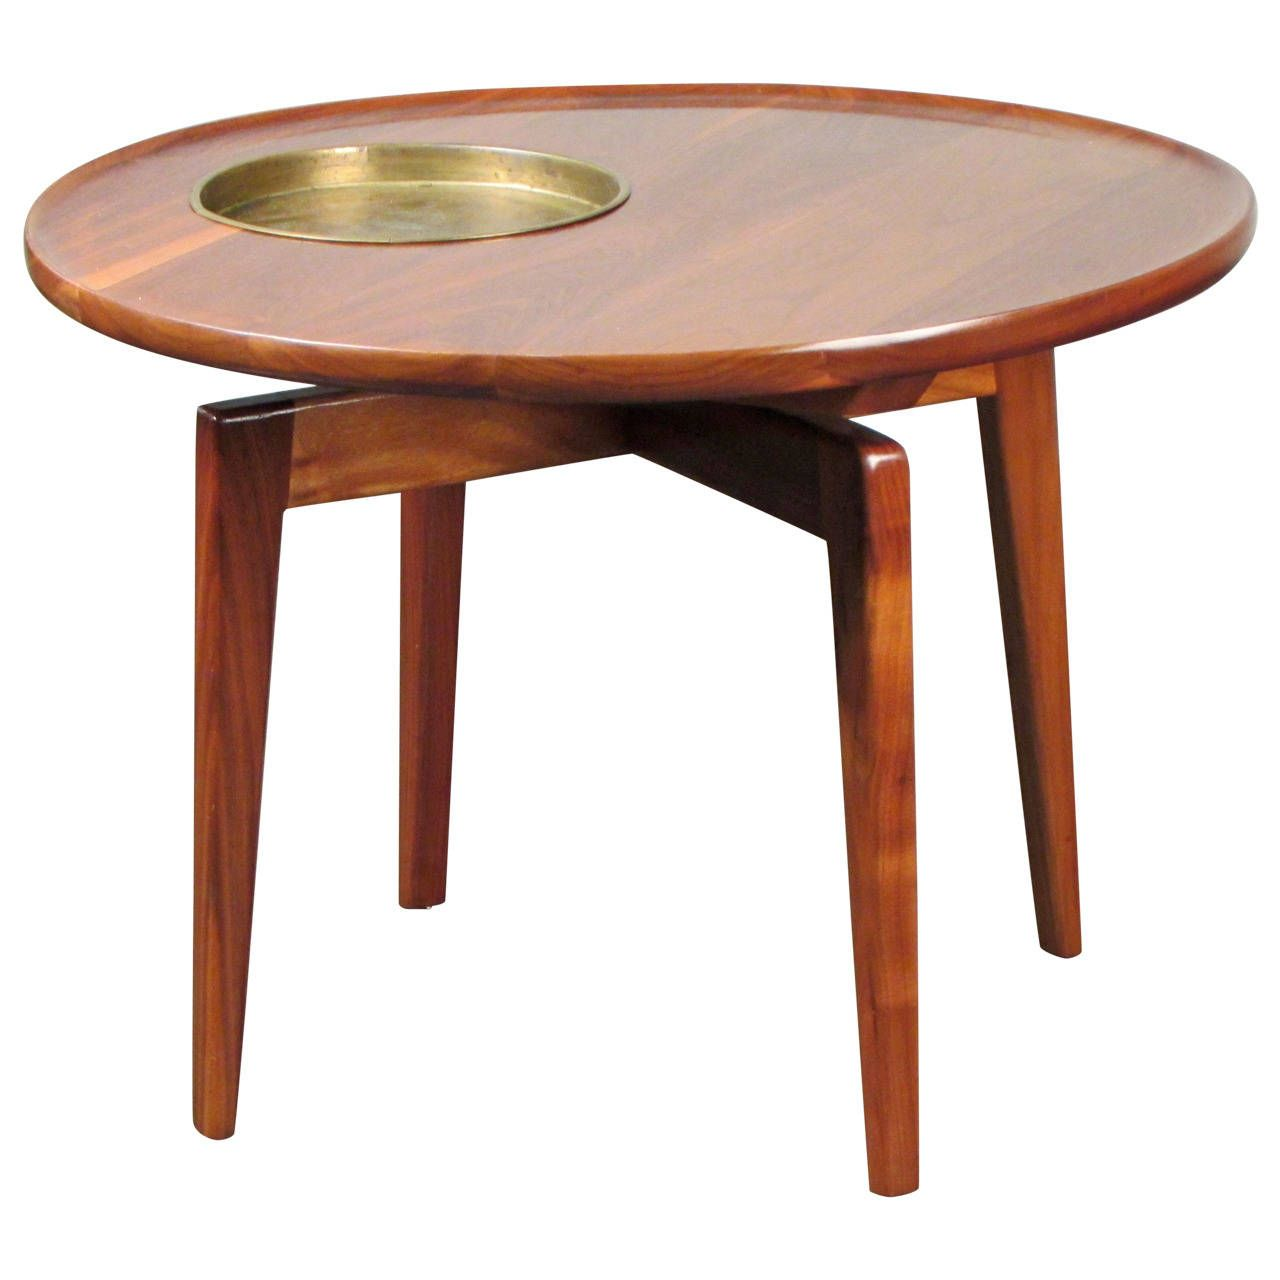 Jens risom floating bench for sale at 1stdibs - View This Item And Discover Similar End Tables For Sale At Rare Sculptural Walnut Table With Brass Plant Stand By Jens Risom Signed